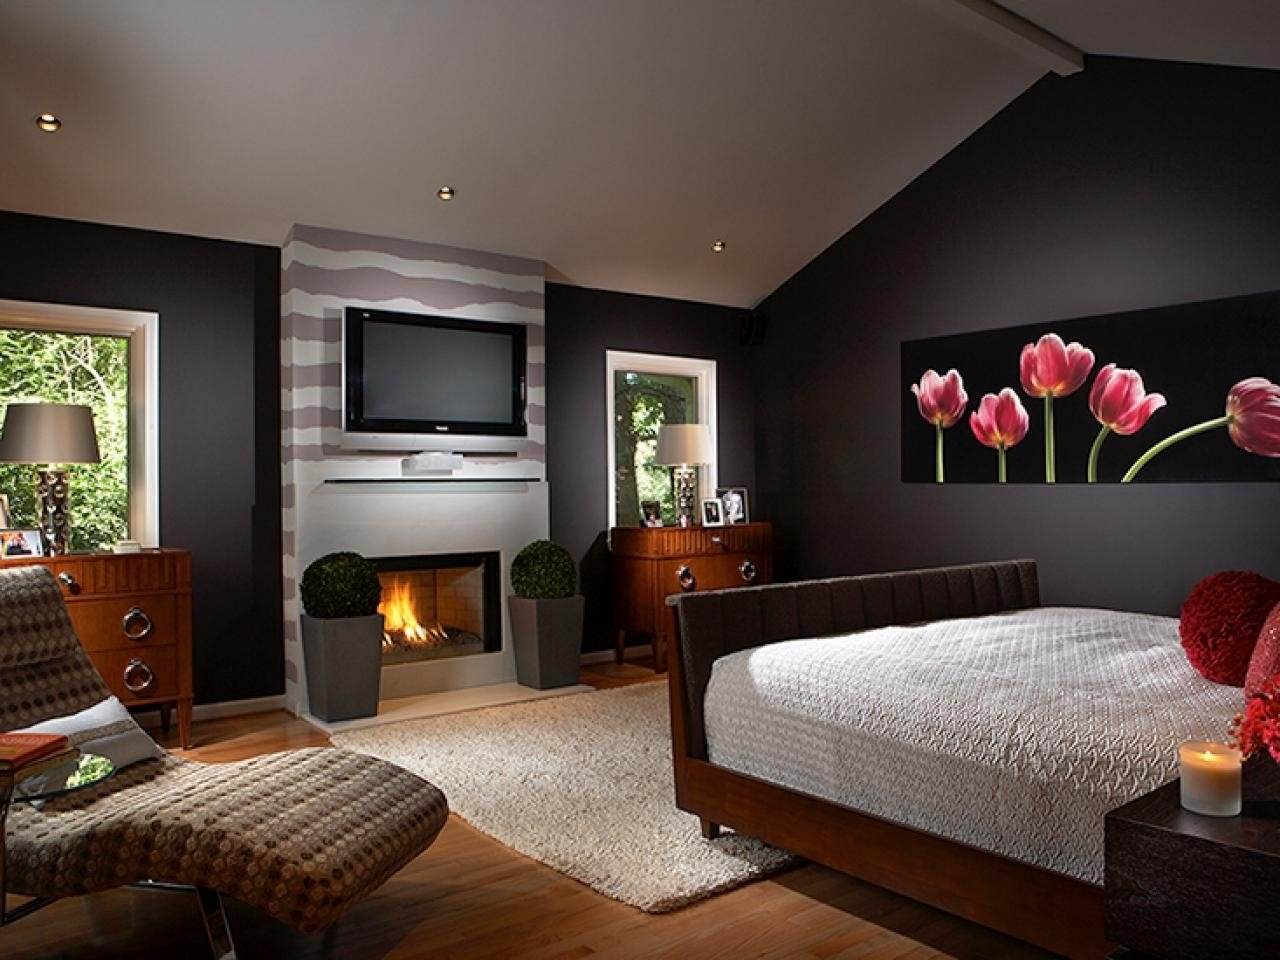 10 Most Recommended Wall Color Ideas For Bedroom best bedroom wall color ideas what color to paint bedroom bedroom 2021